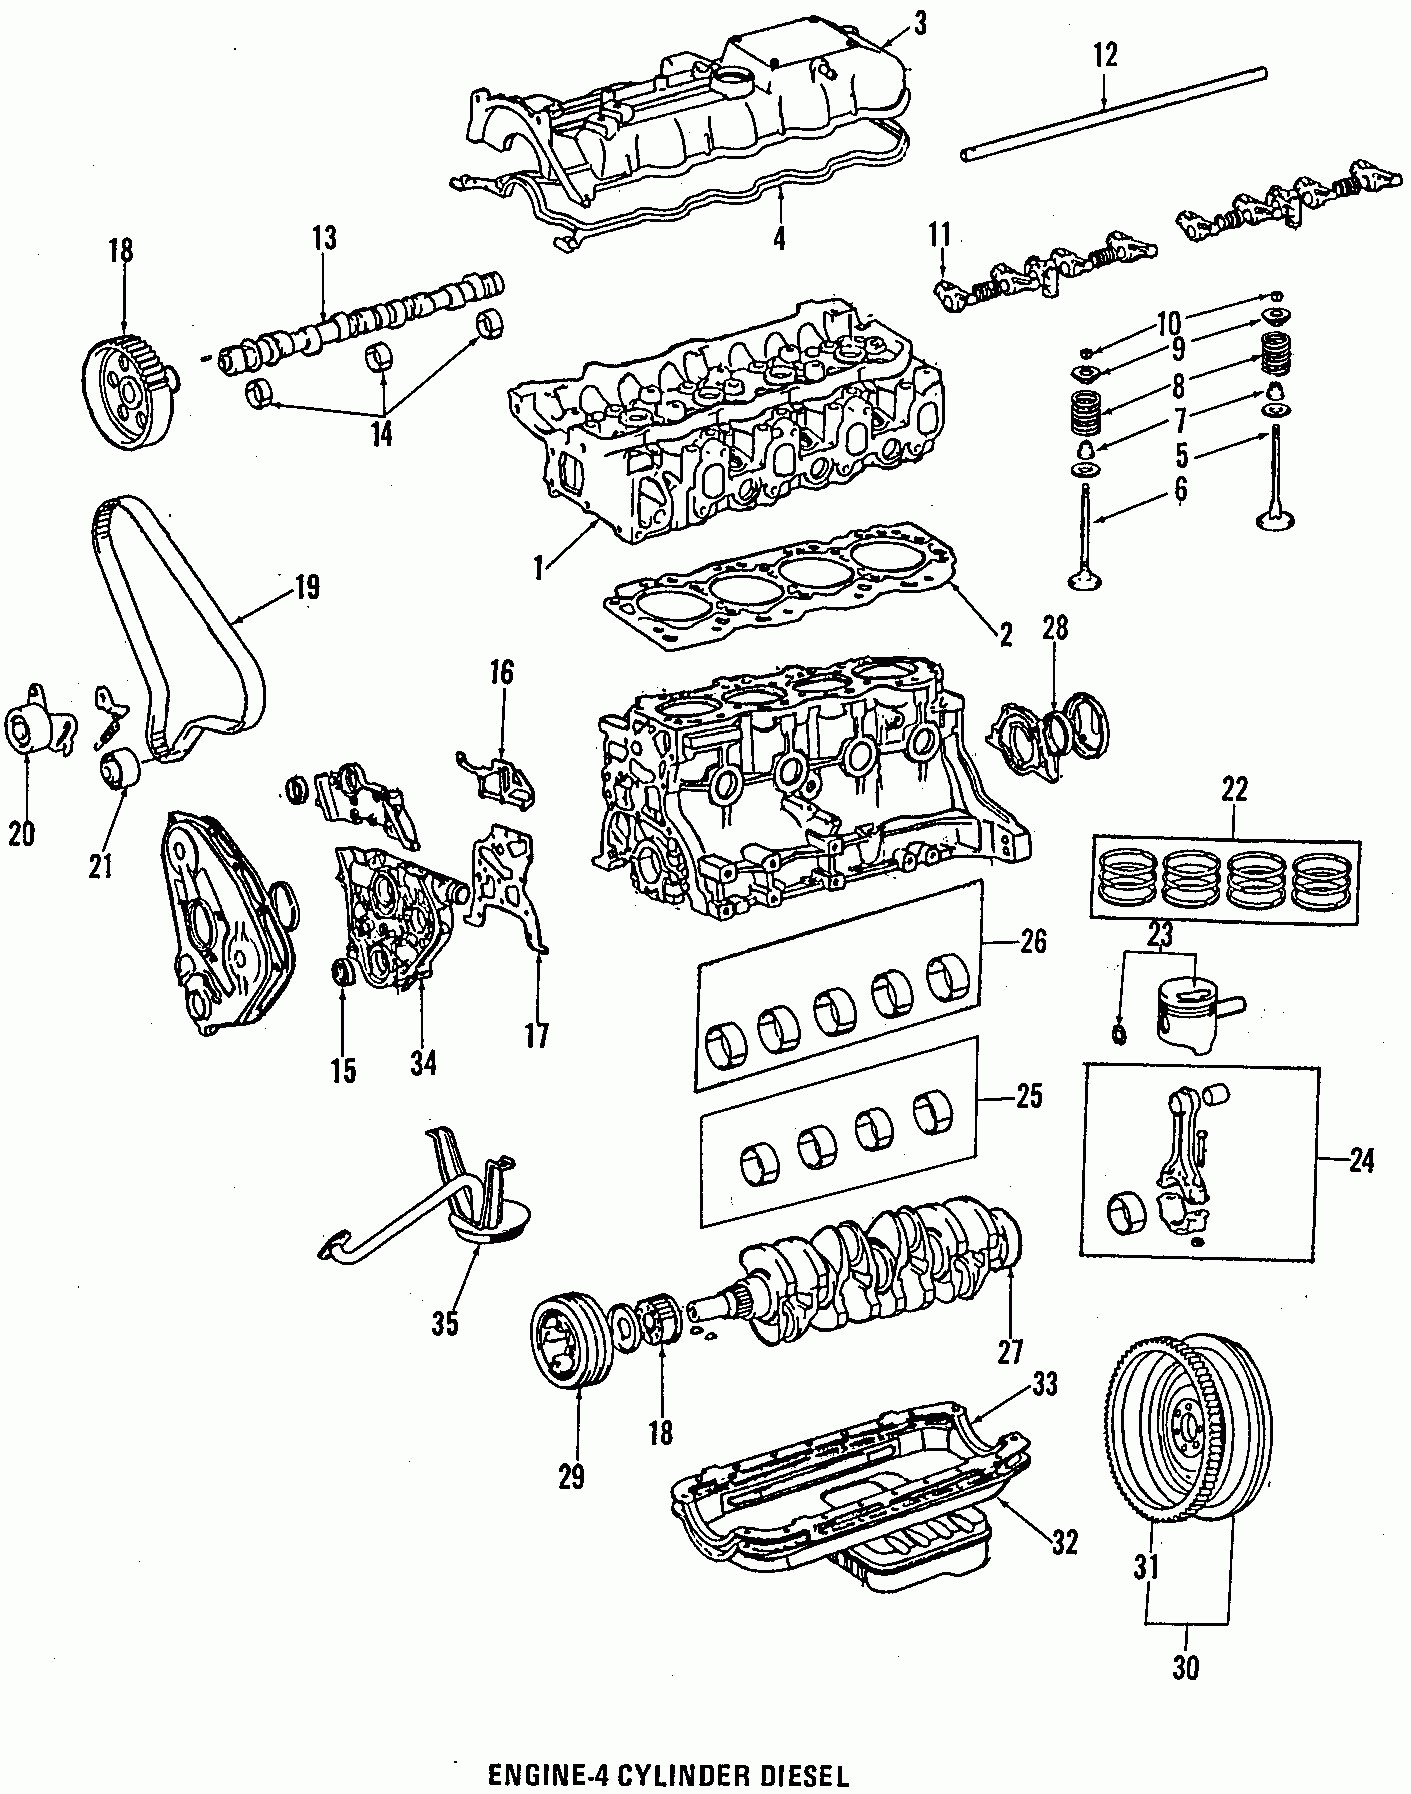 2007 toyota tundra parts diagram